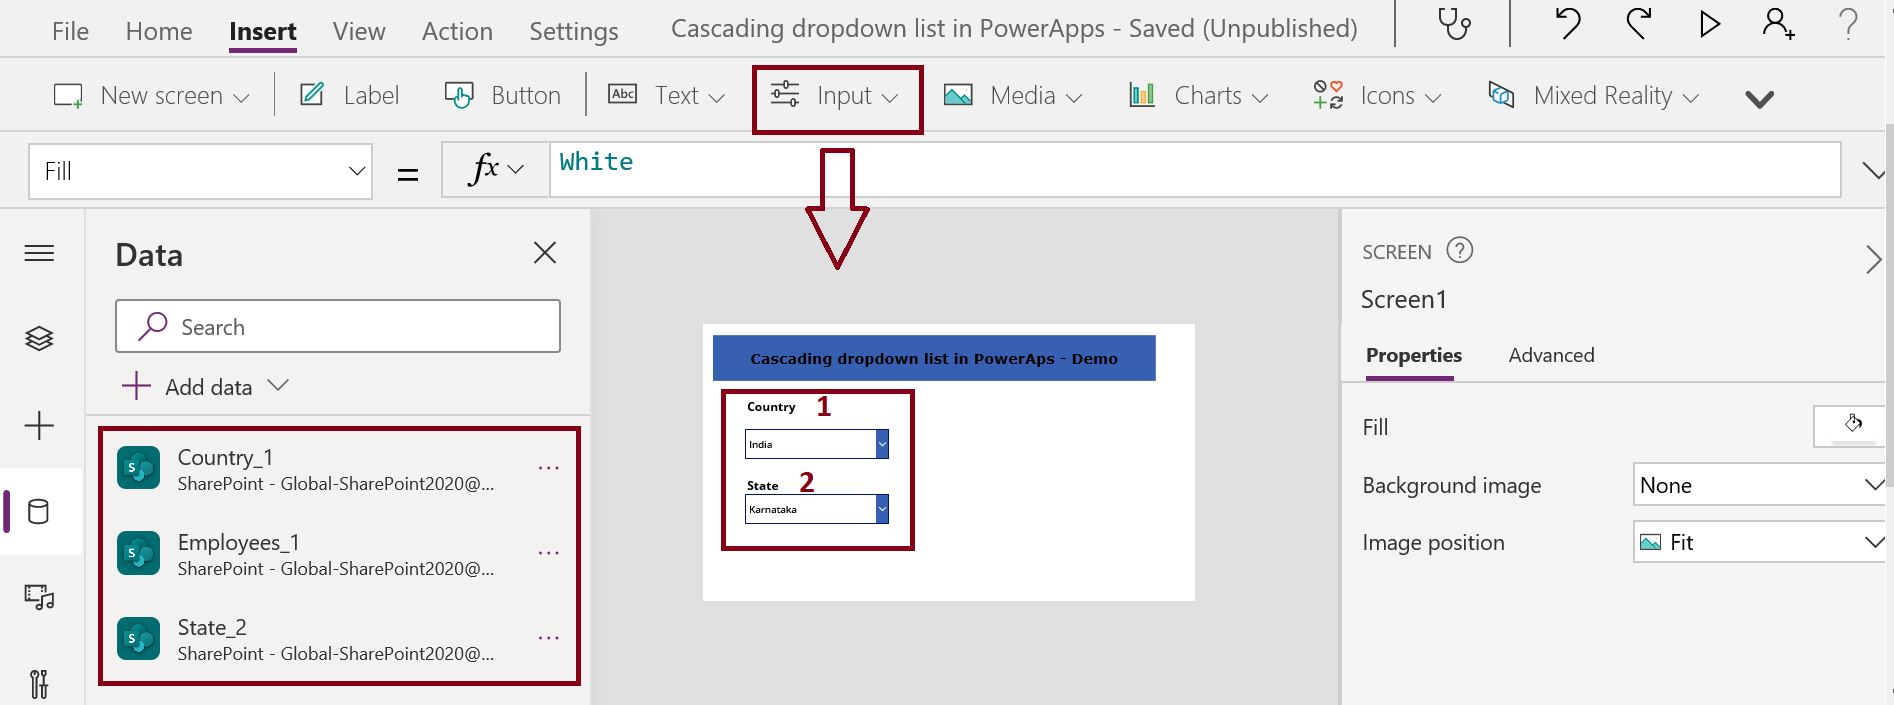 Design the dependent dropdown list canvas app in PowerApps